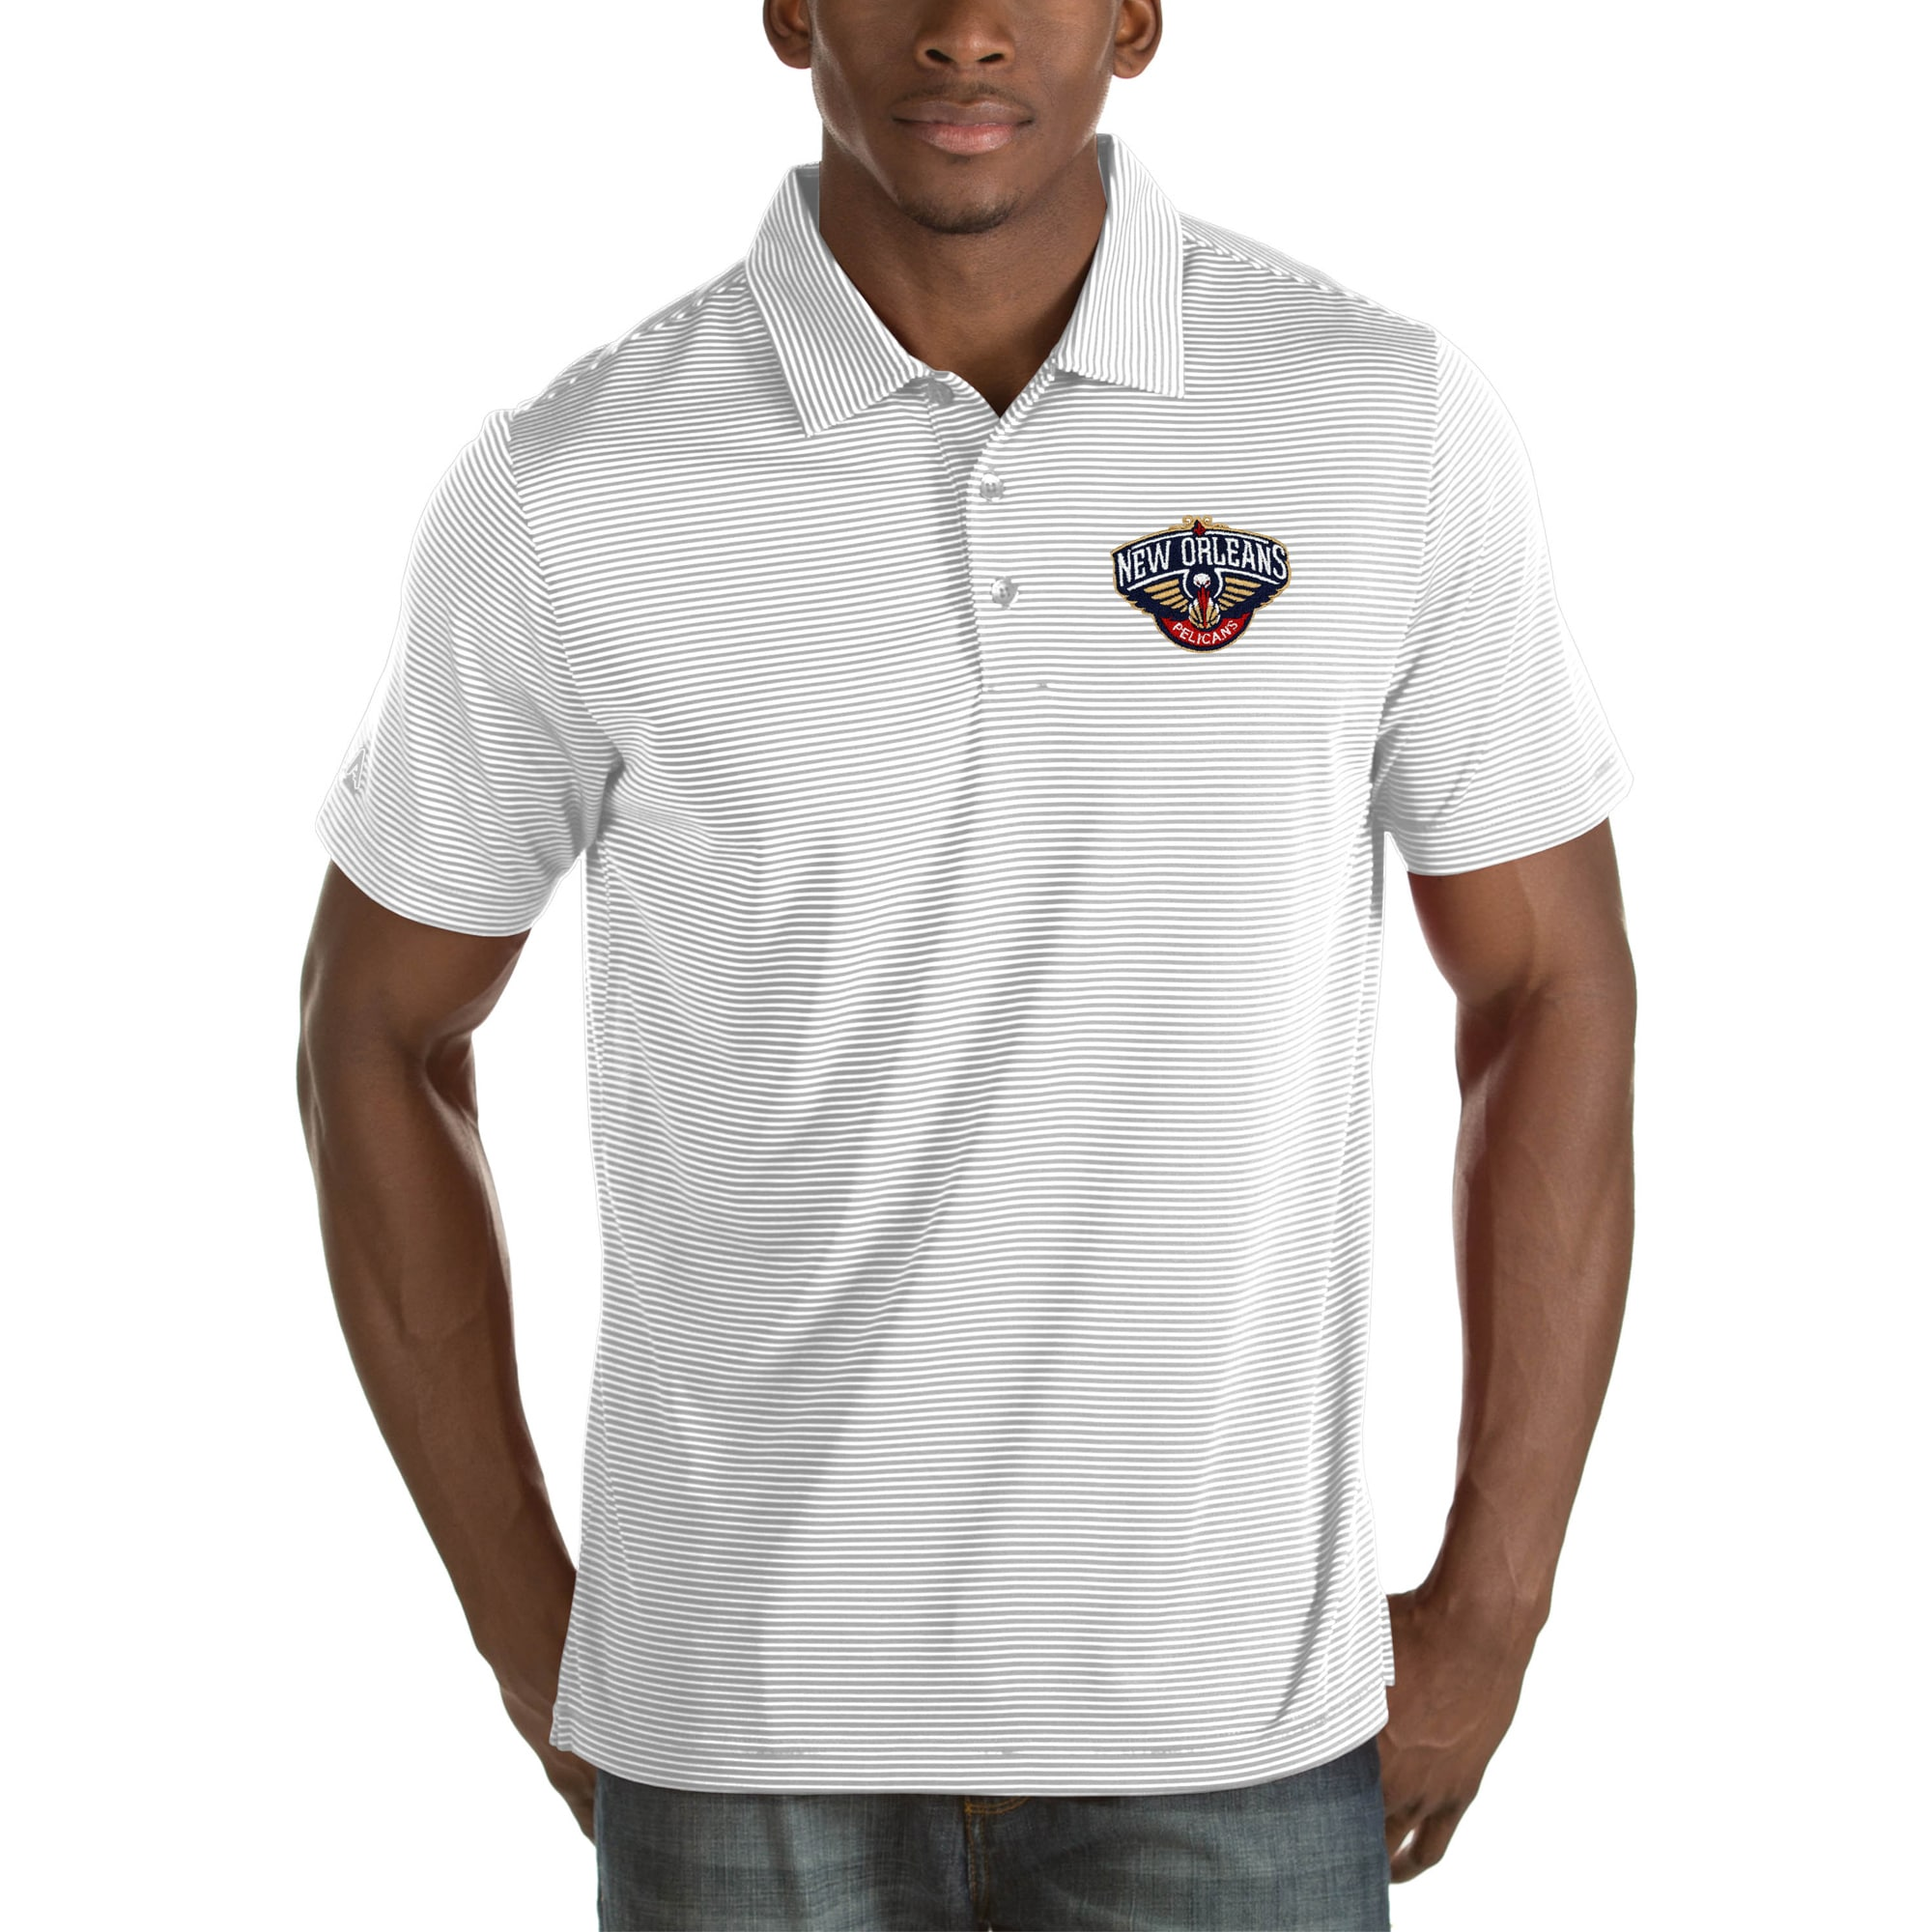 New Orleans Pelicans Antigua Quest Big & Tall Polo - White